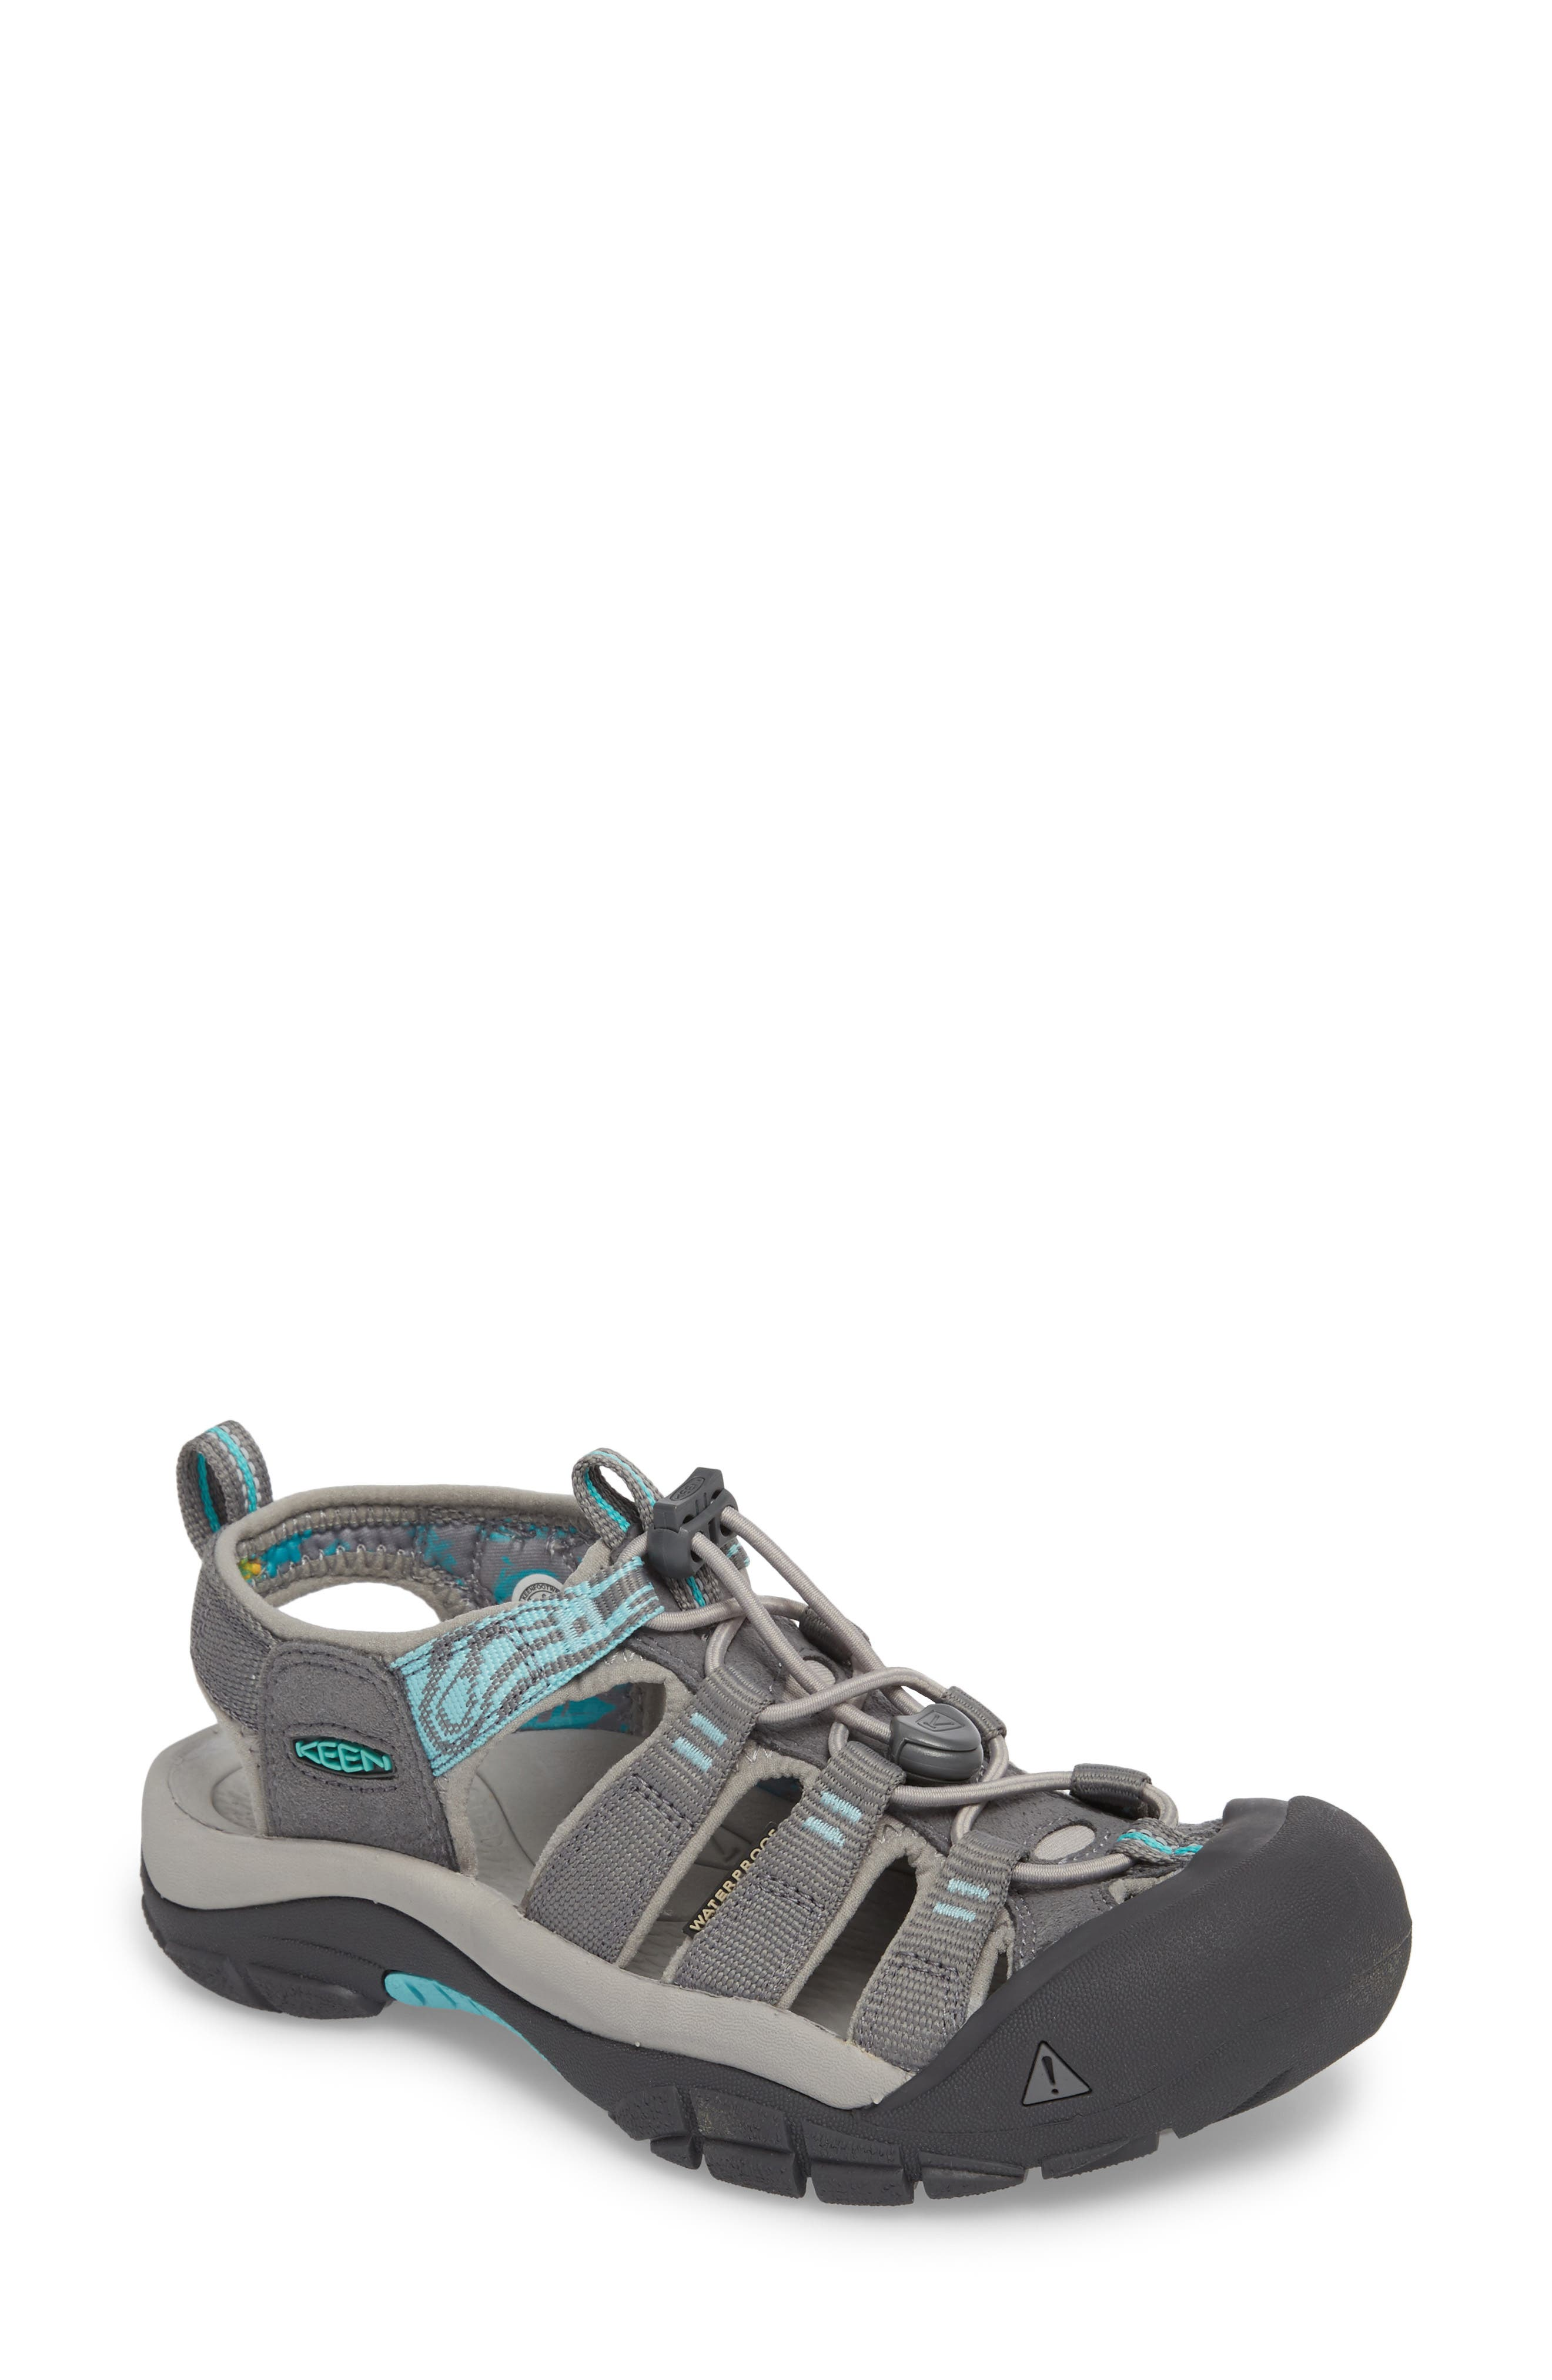 Newport Hydro Sandal,                             Main thumbnail 1, color,                             Steel Grey/ Blue Turquoise